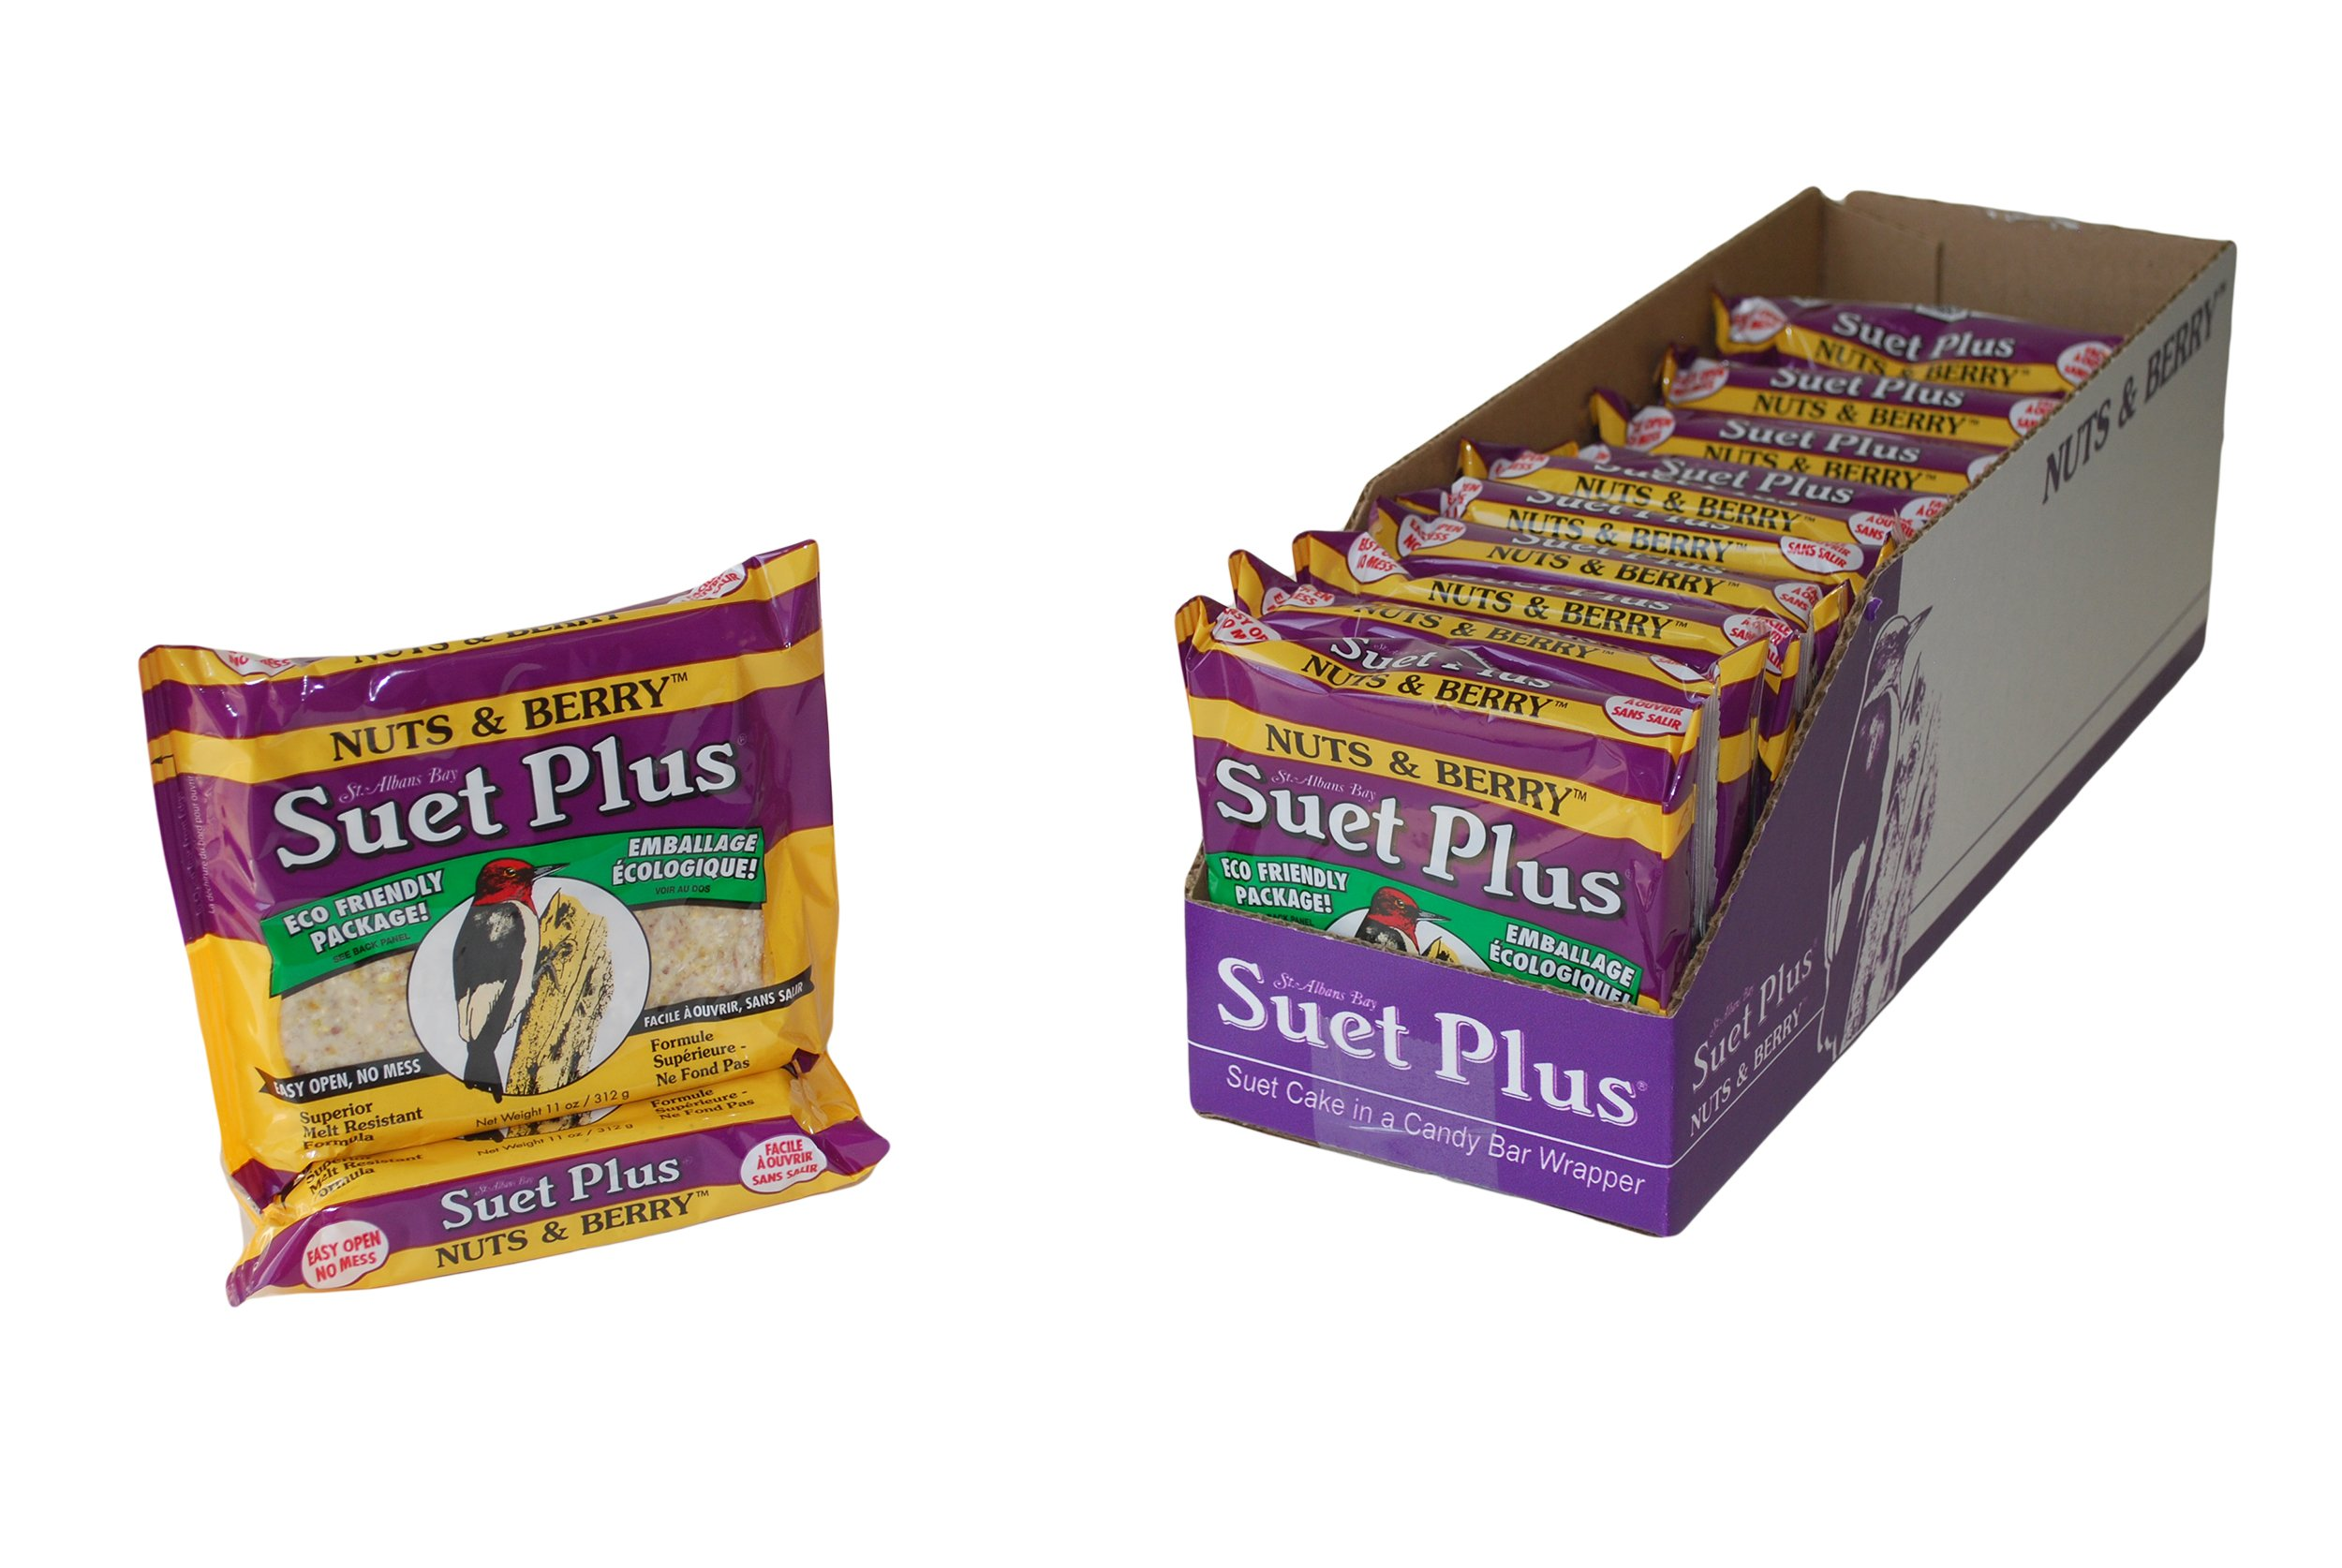 Nuts & Berry Blend Suet 12 Pack